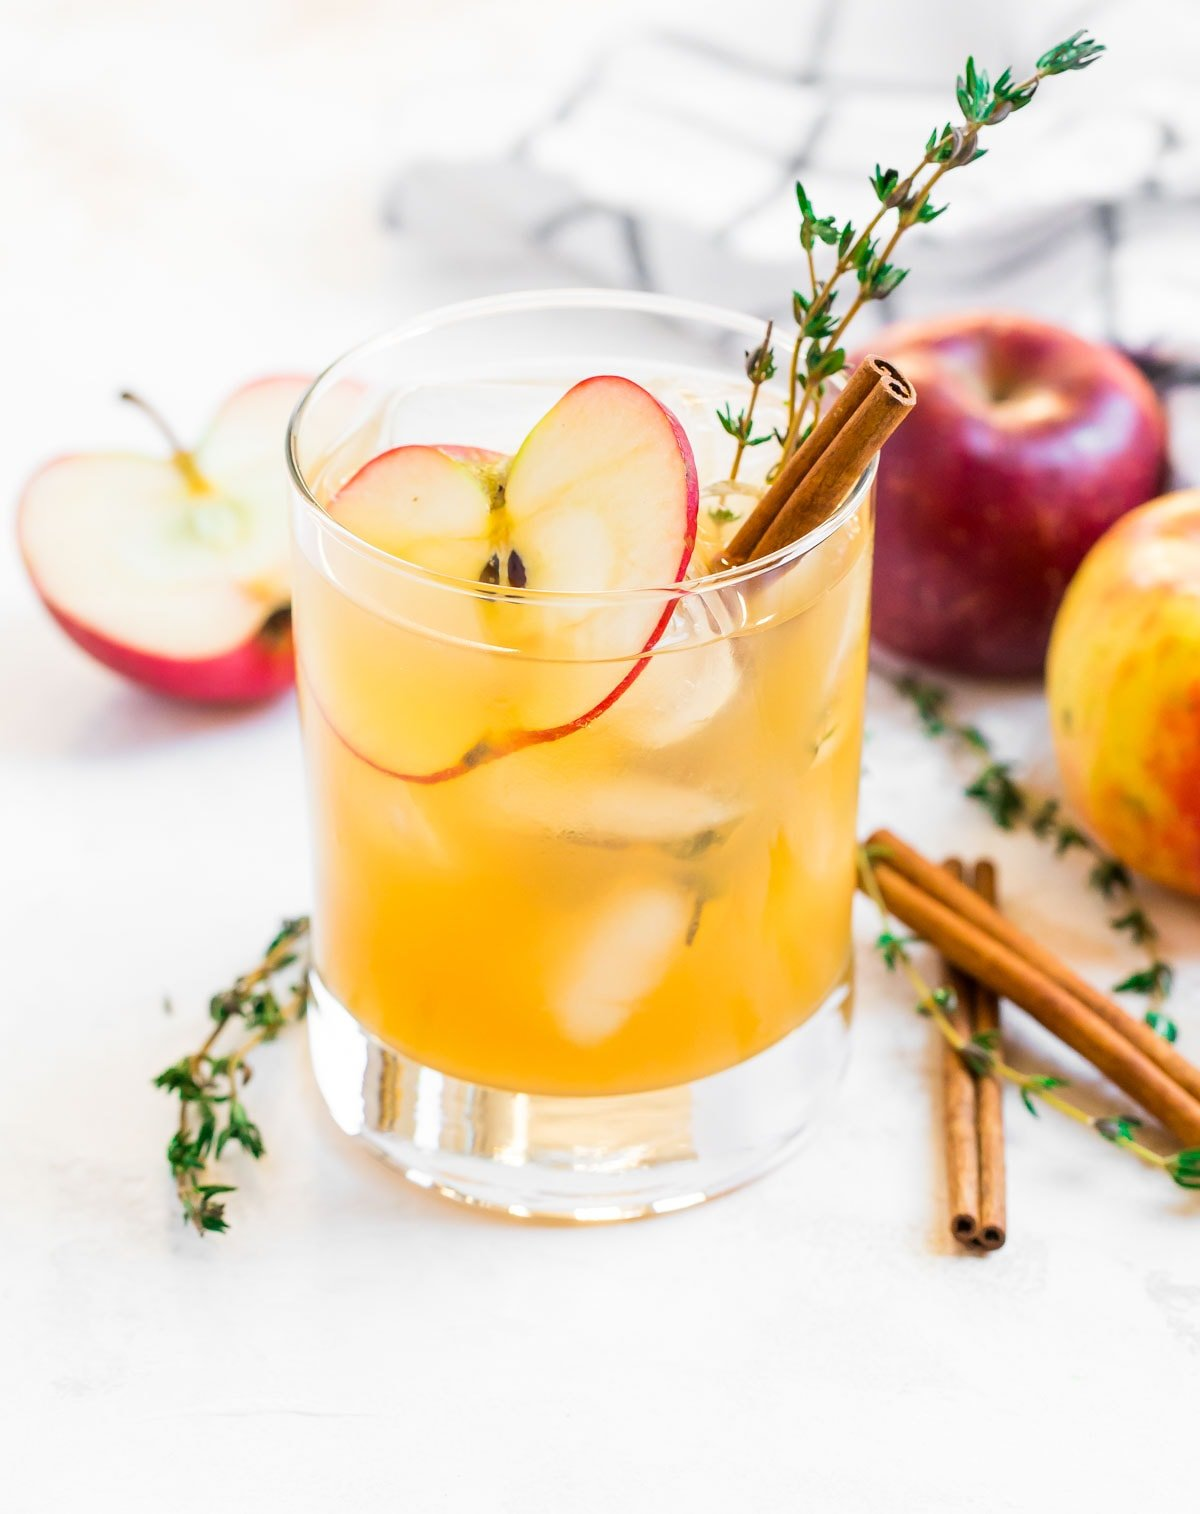 Apple cider cocktail with cinnamon and apple